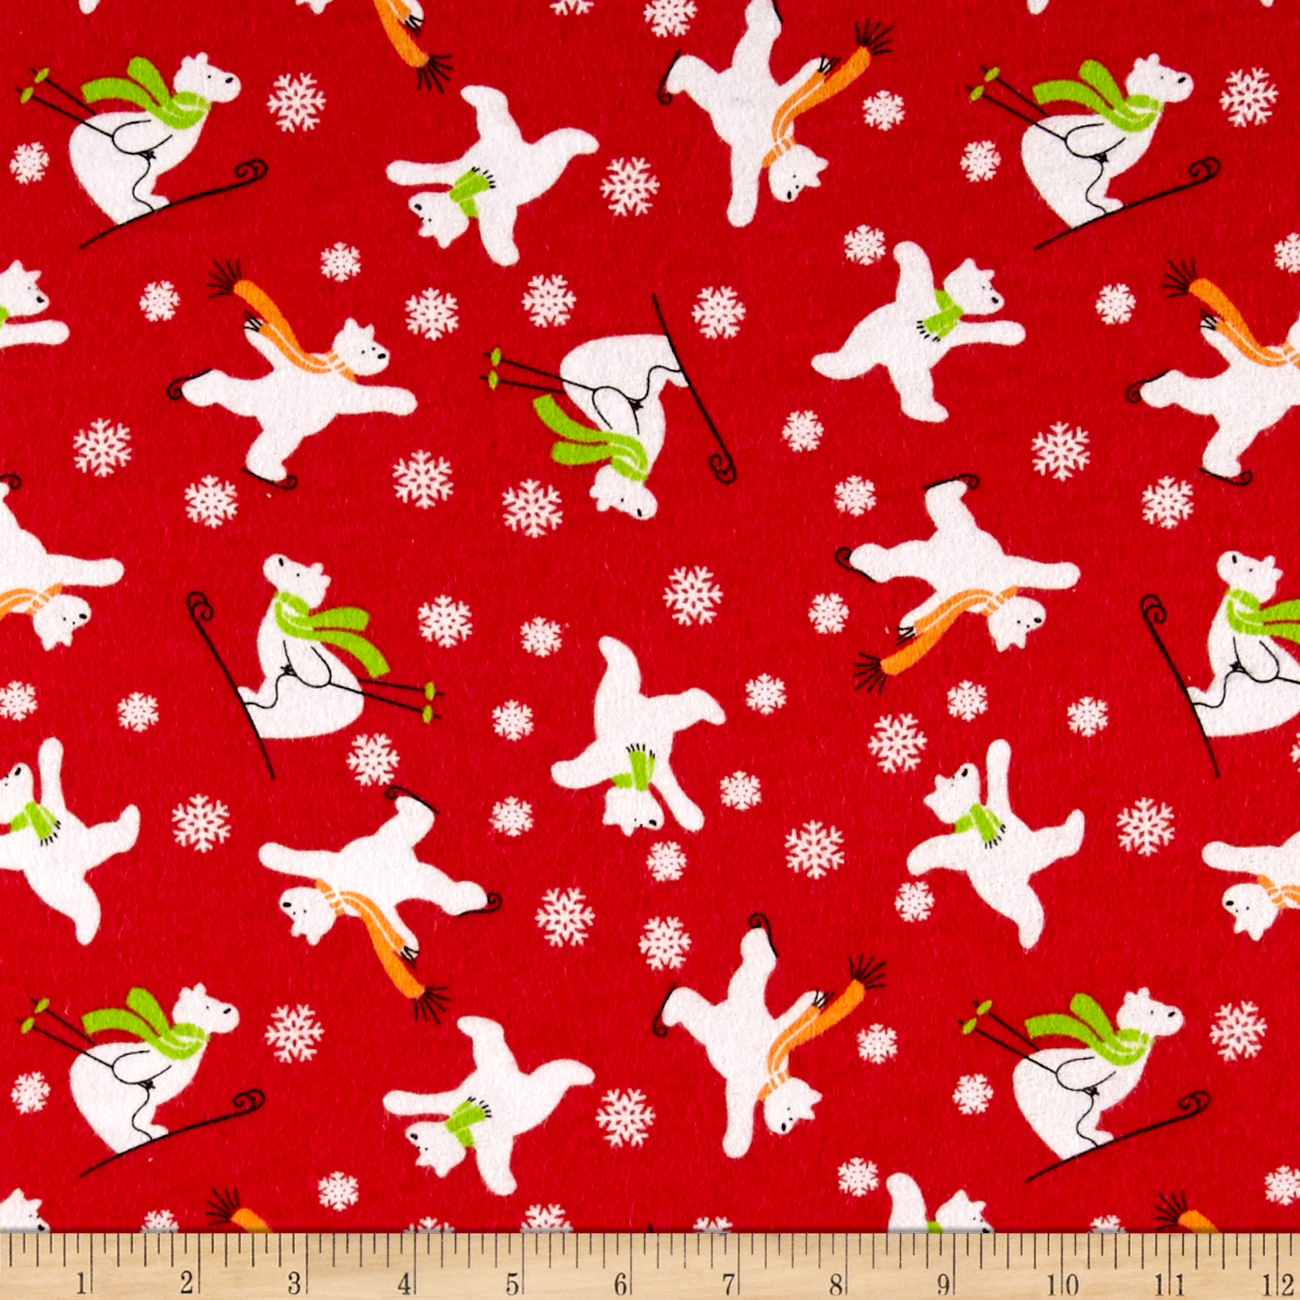 Skating Bears Flannel Red Fabric by Newcastle in USA